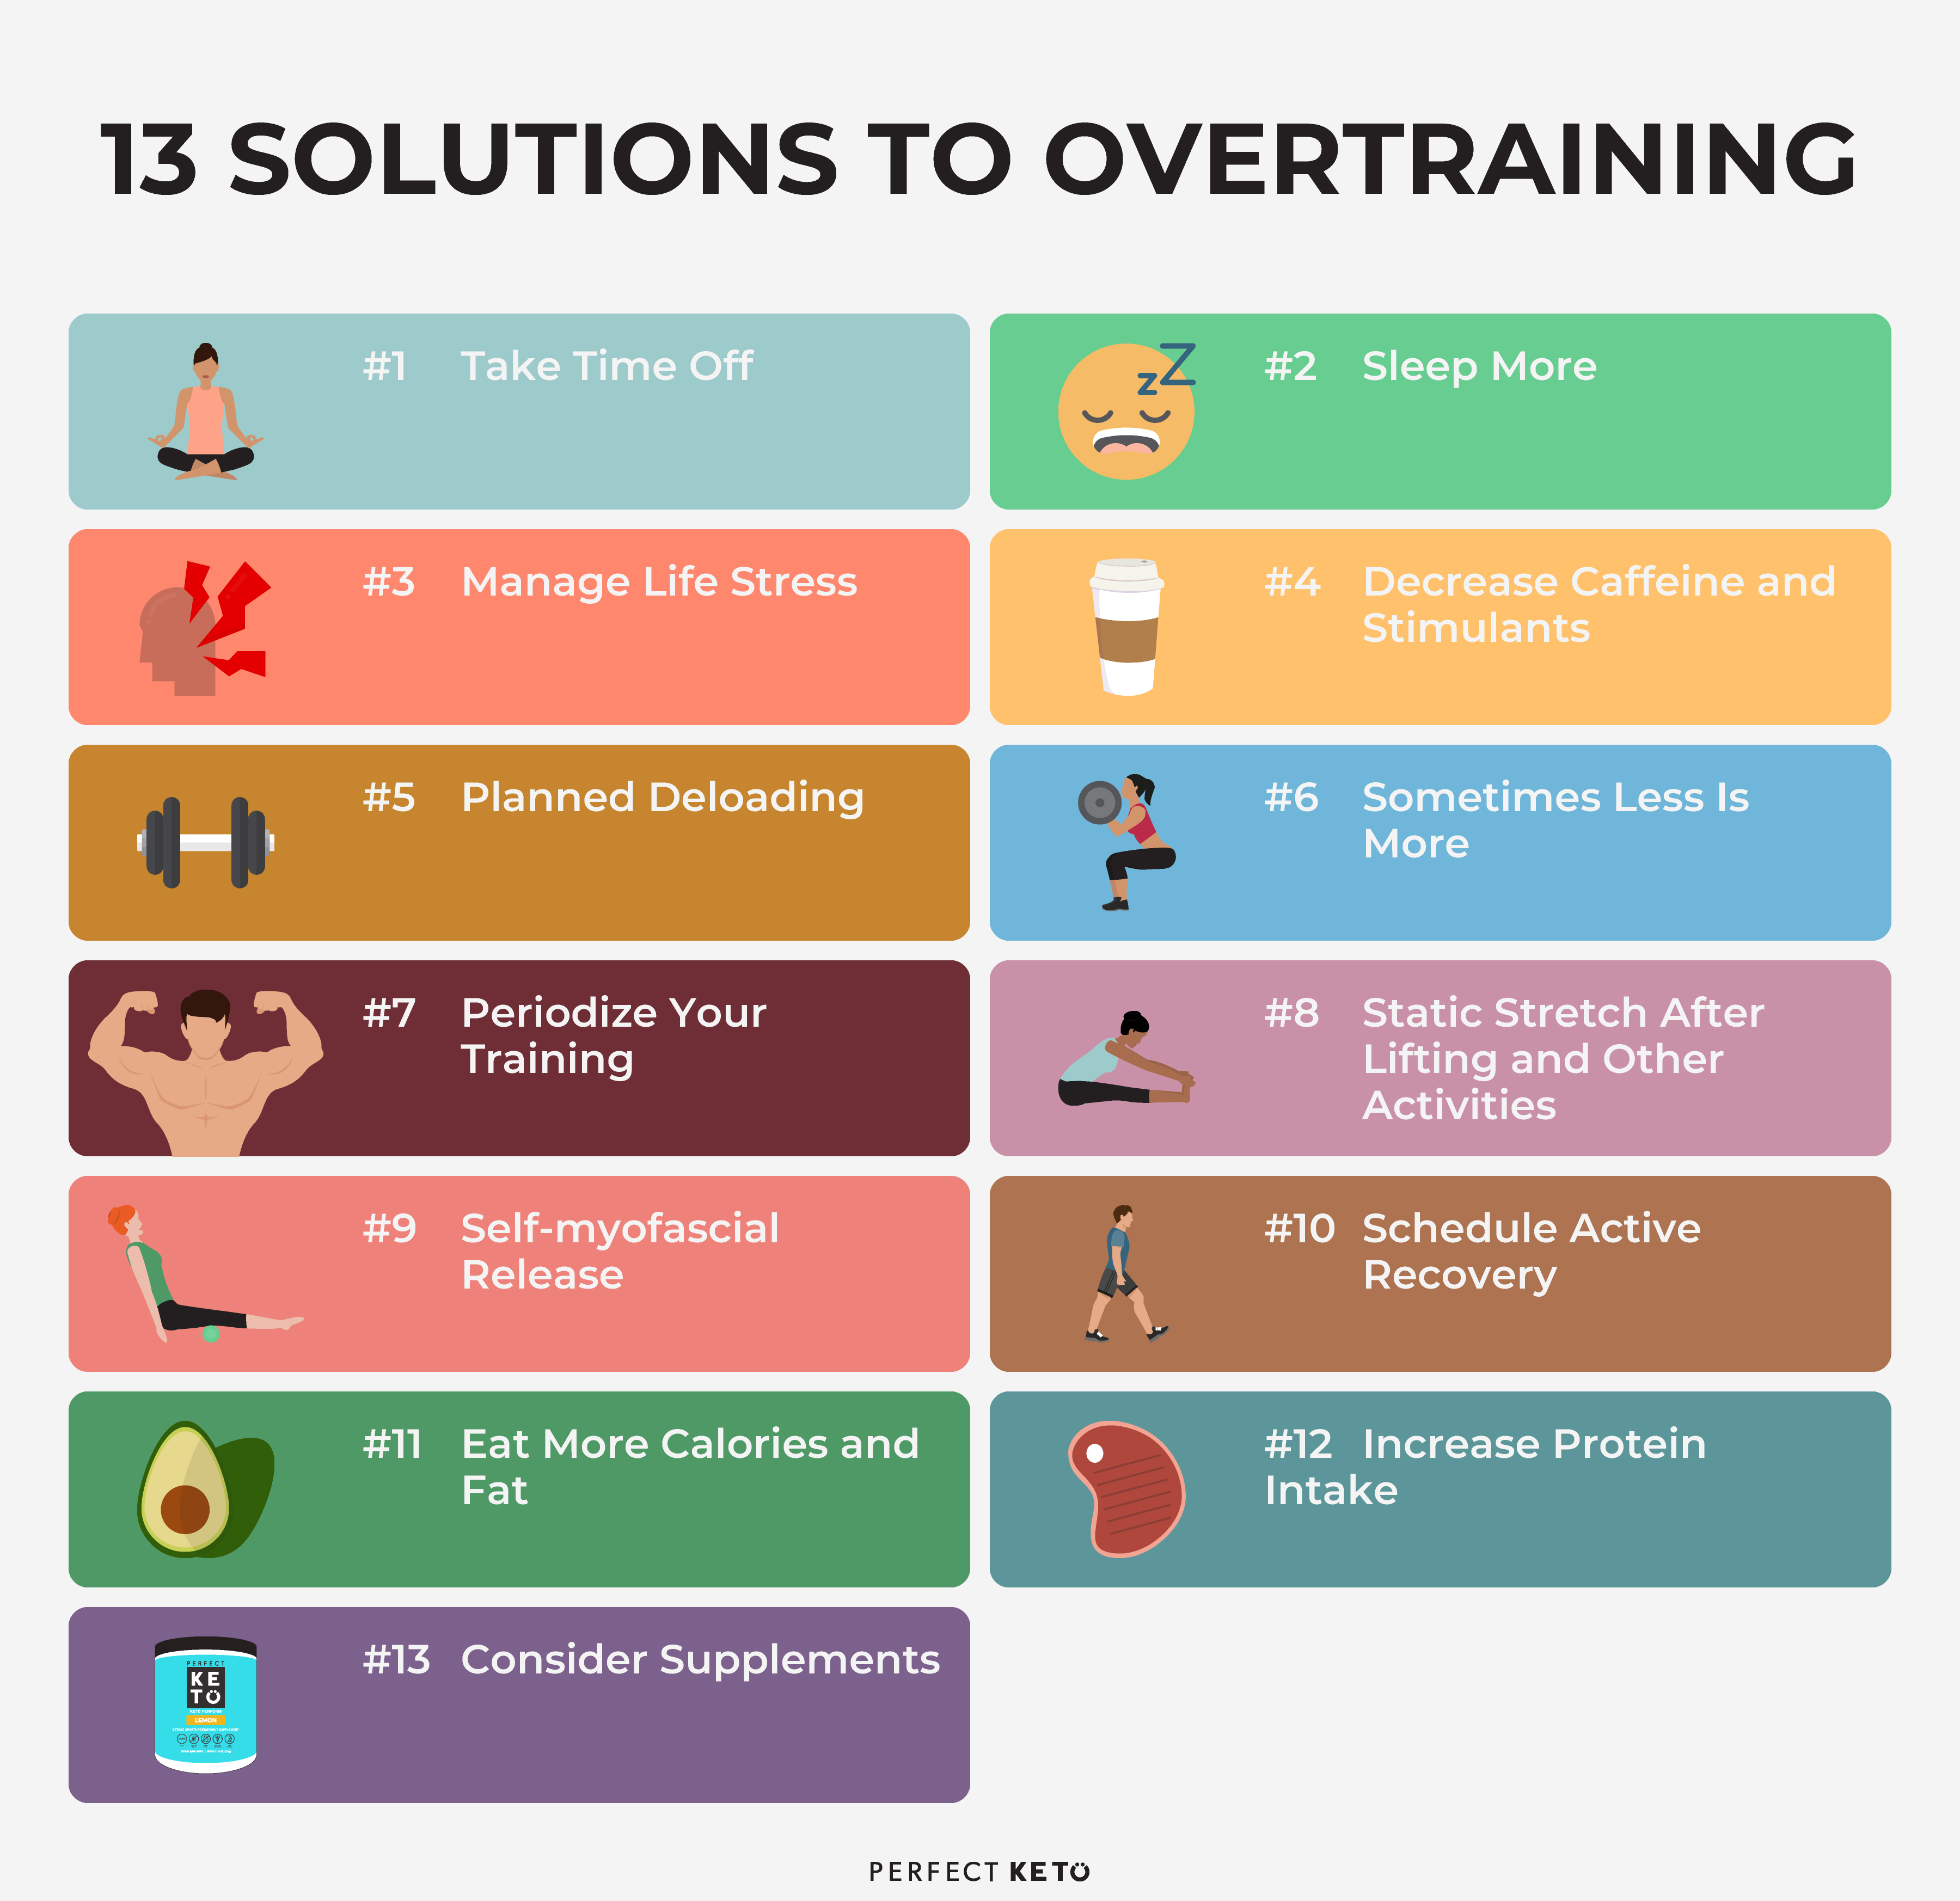 13-solutions-to-overtraining.jpg